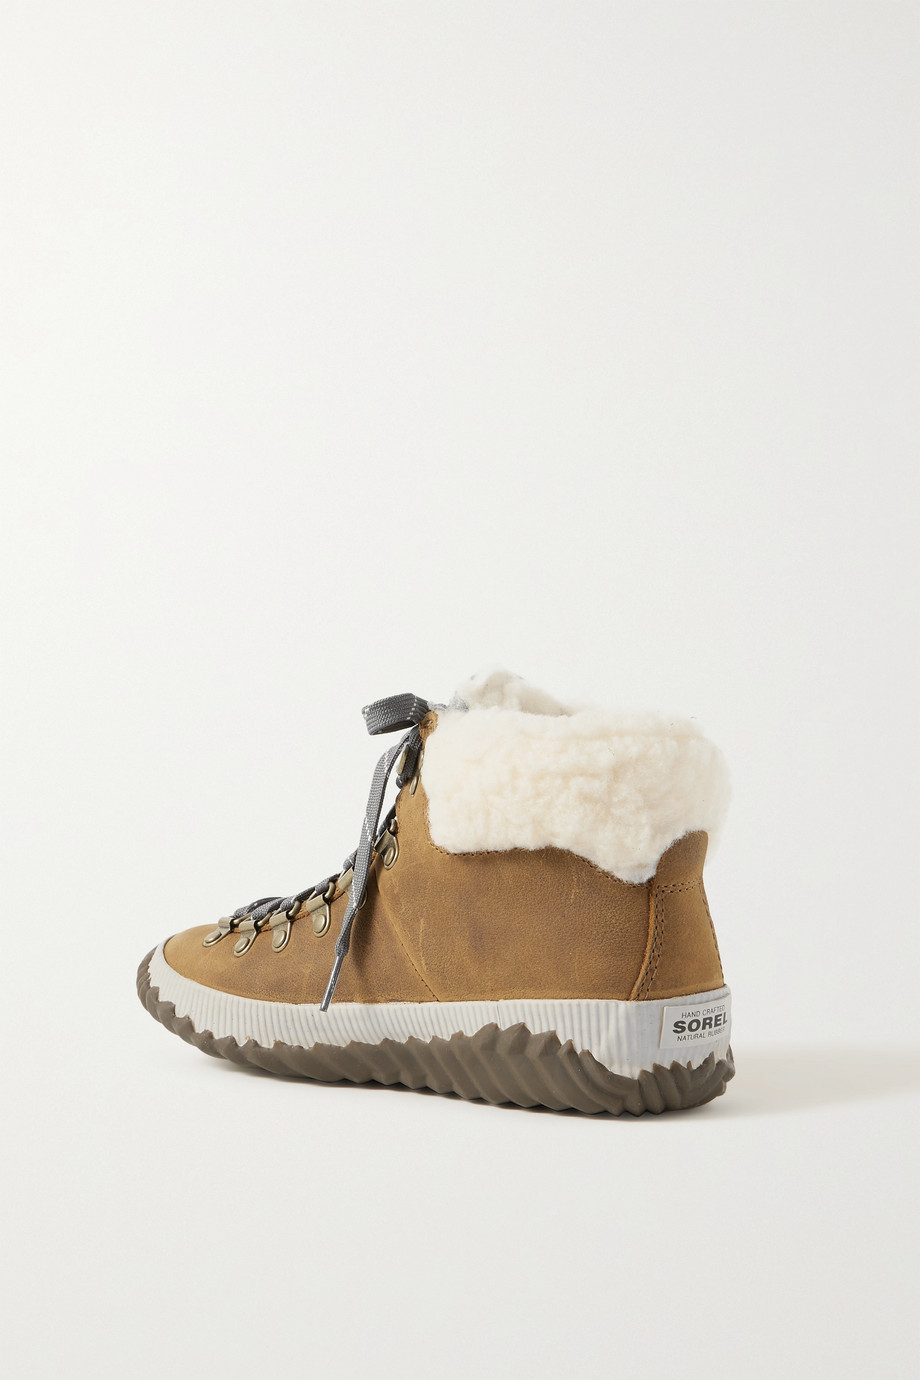 SOREL Out 'N About Plus Conquest faux shearling-trimmed waterproof suede ankle boots